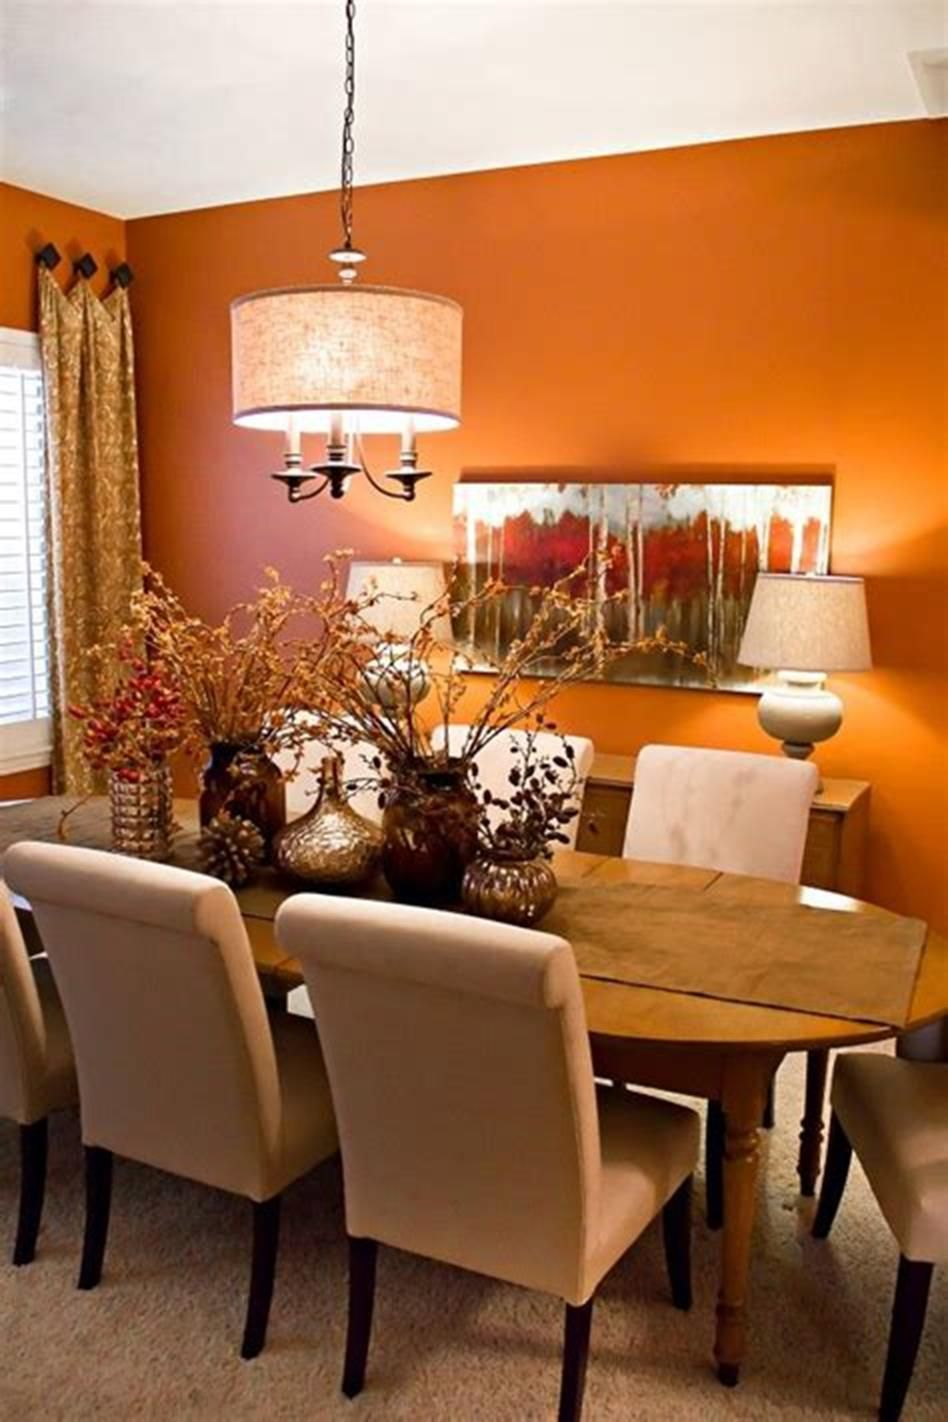 43 Most Popular Dining Room Design And Decorating Ideas 34